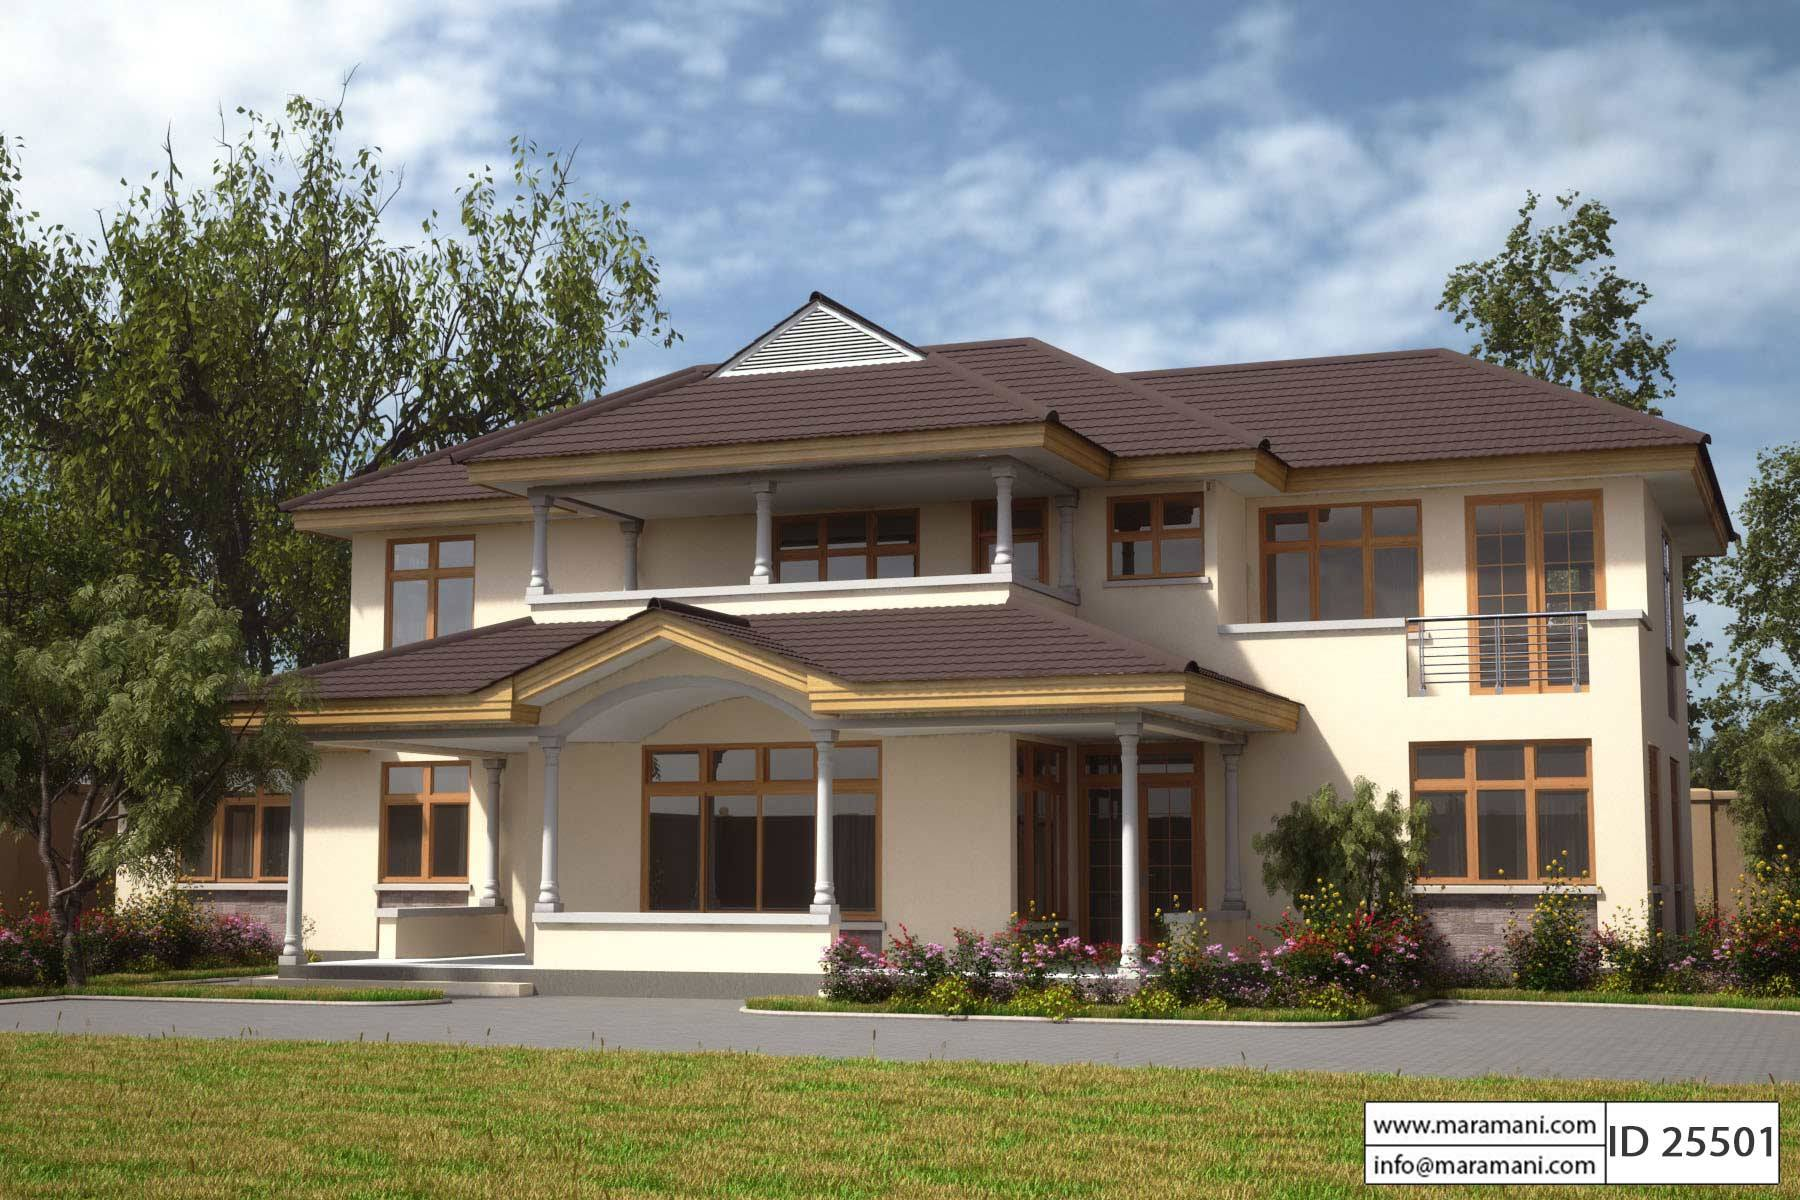 5 bedroom house plan with bonus room id 25501 plans by for 5 bedroom house